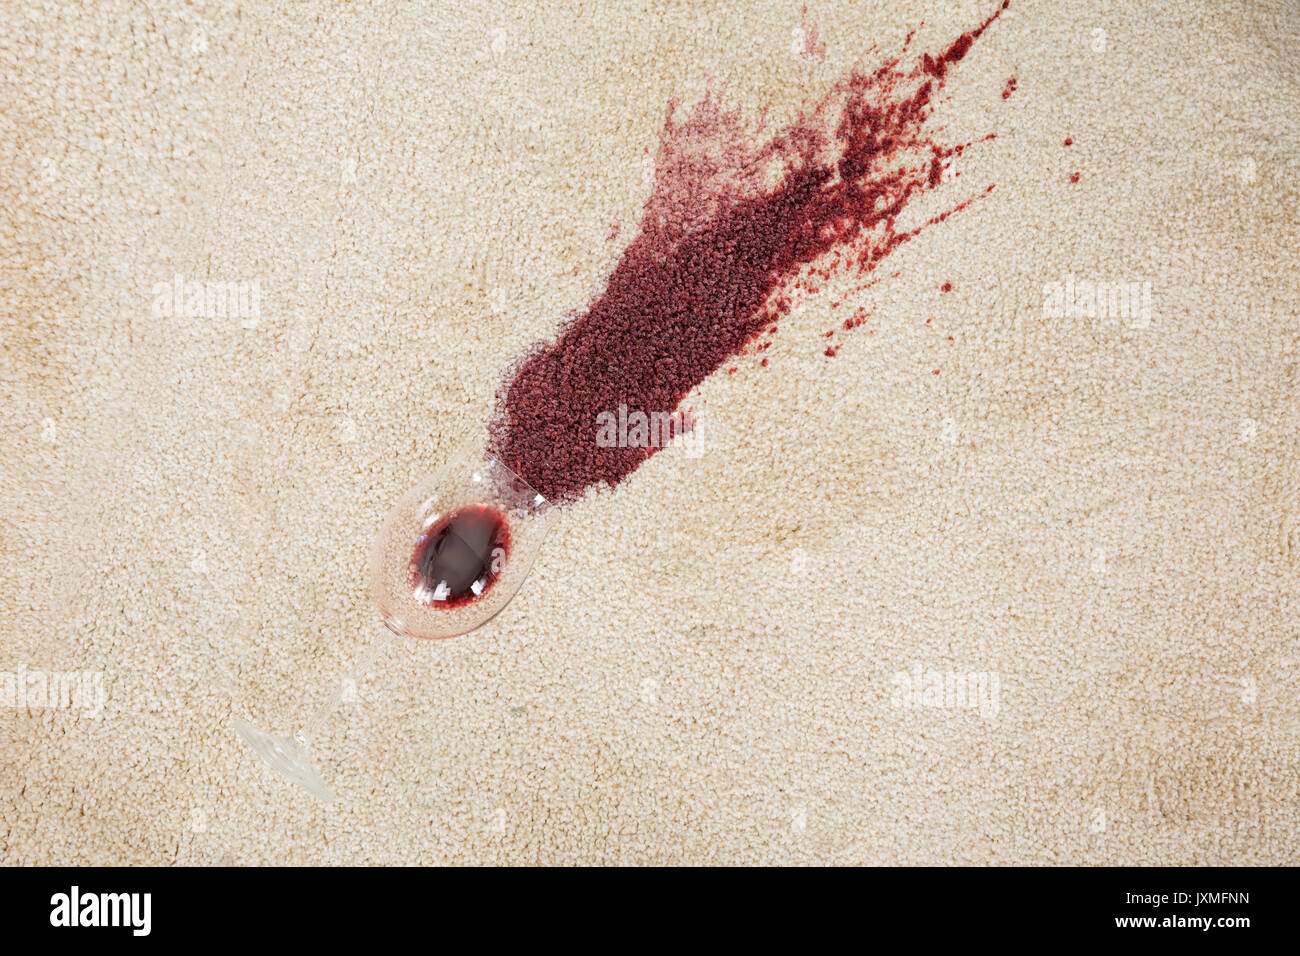 high angle view of red wine spilled from glass on carpet stock image